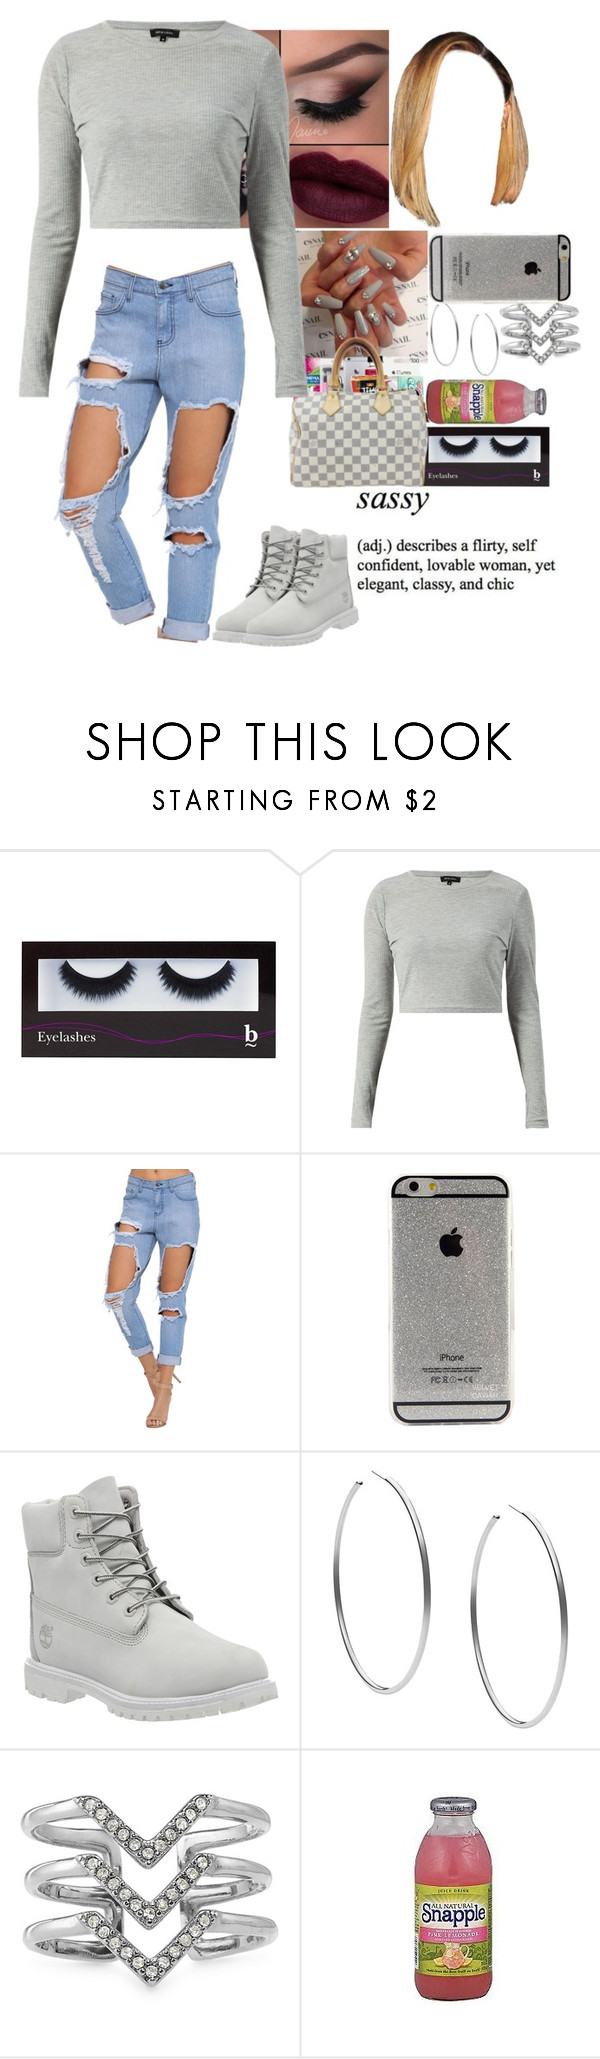 """""""Out"""" by divap01 ❤ liked on Polyvore featuring BBrowBar, Timberland, Michael Kors, Stella & Dot and FRUIT"""